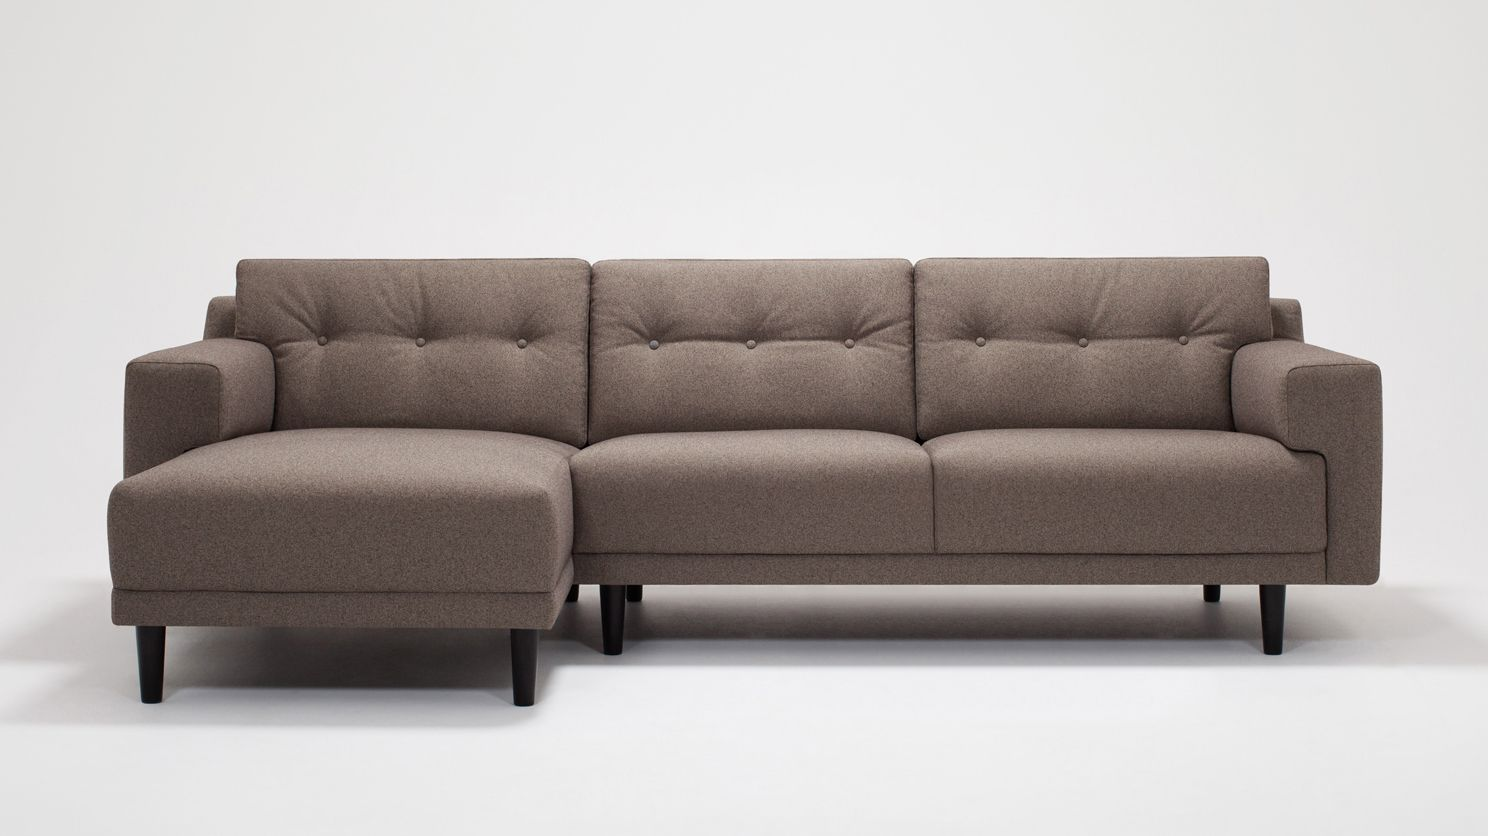 Www eq3 com us en productdetail living seating sectionals remi 2 piece sectional sofa with chaise fabric html